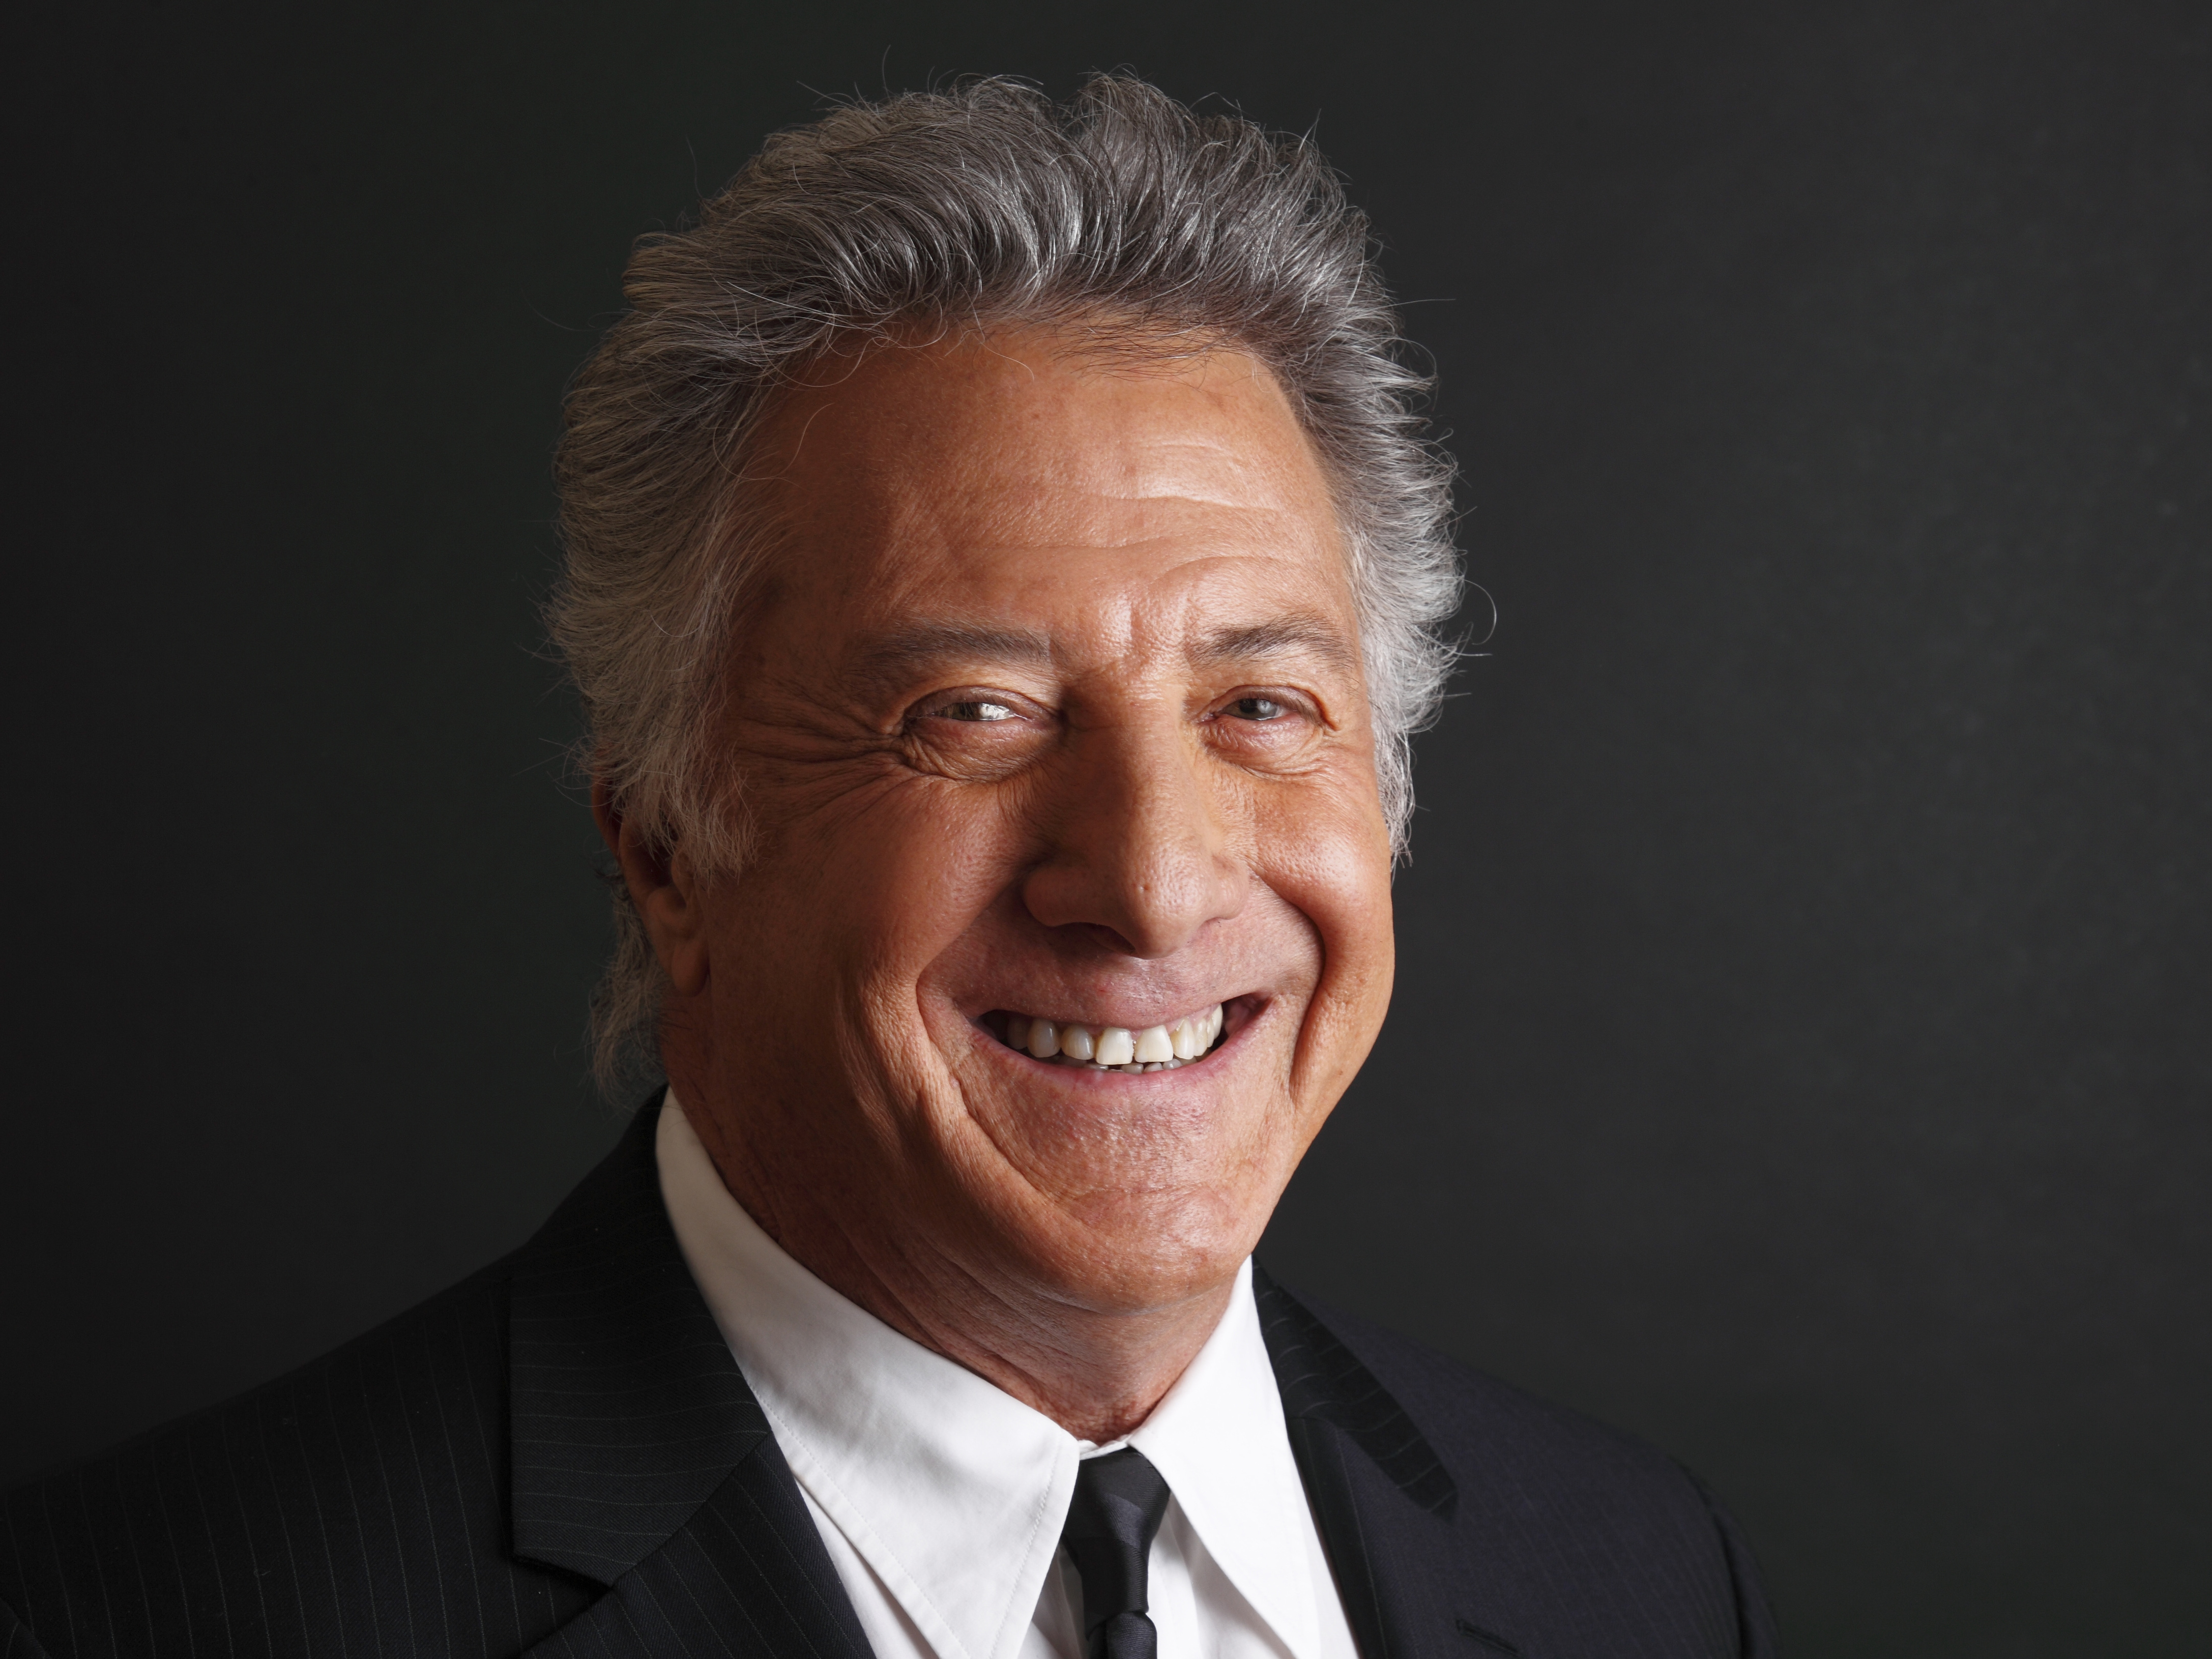 Actor Dustin Hoffman And Director Brett Ratner Accused Of Sexual Misconduct